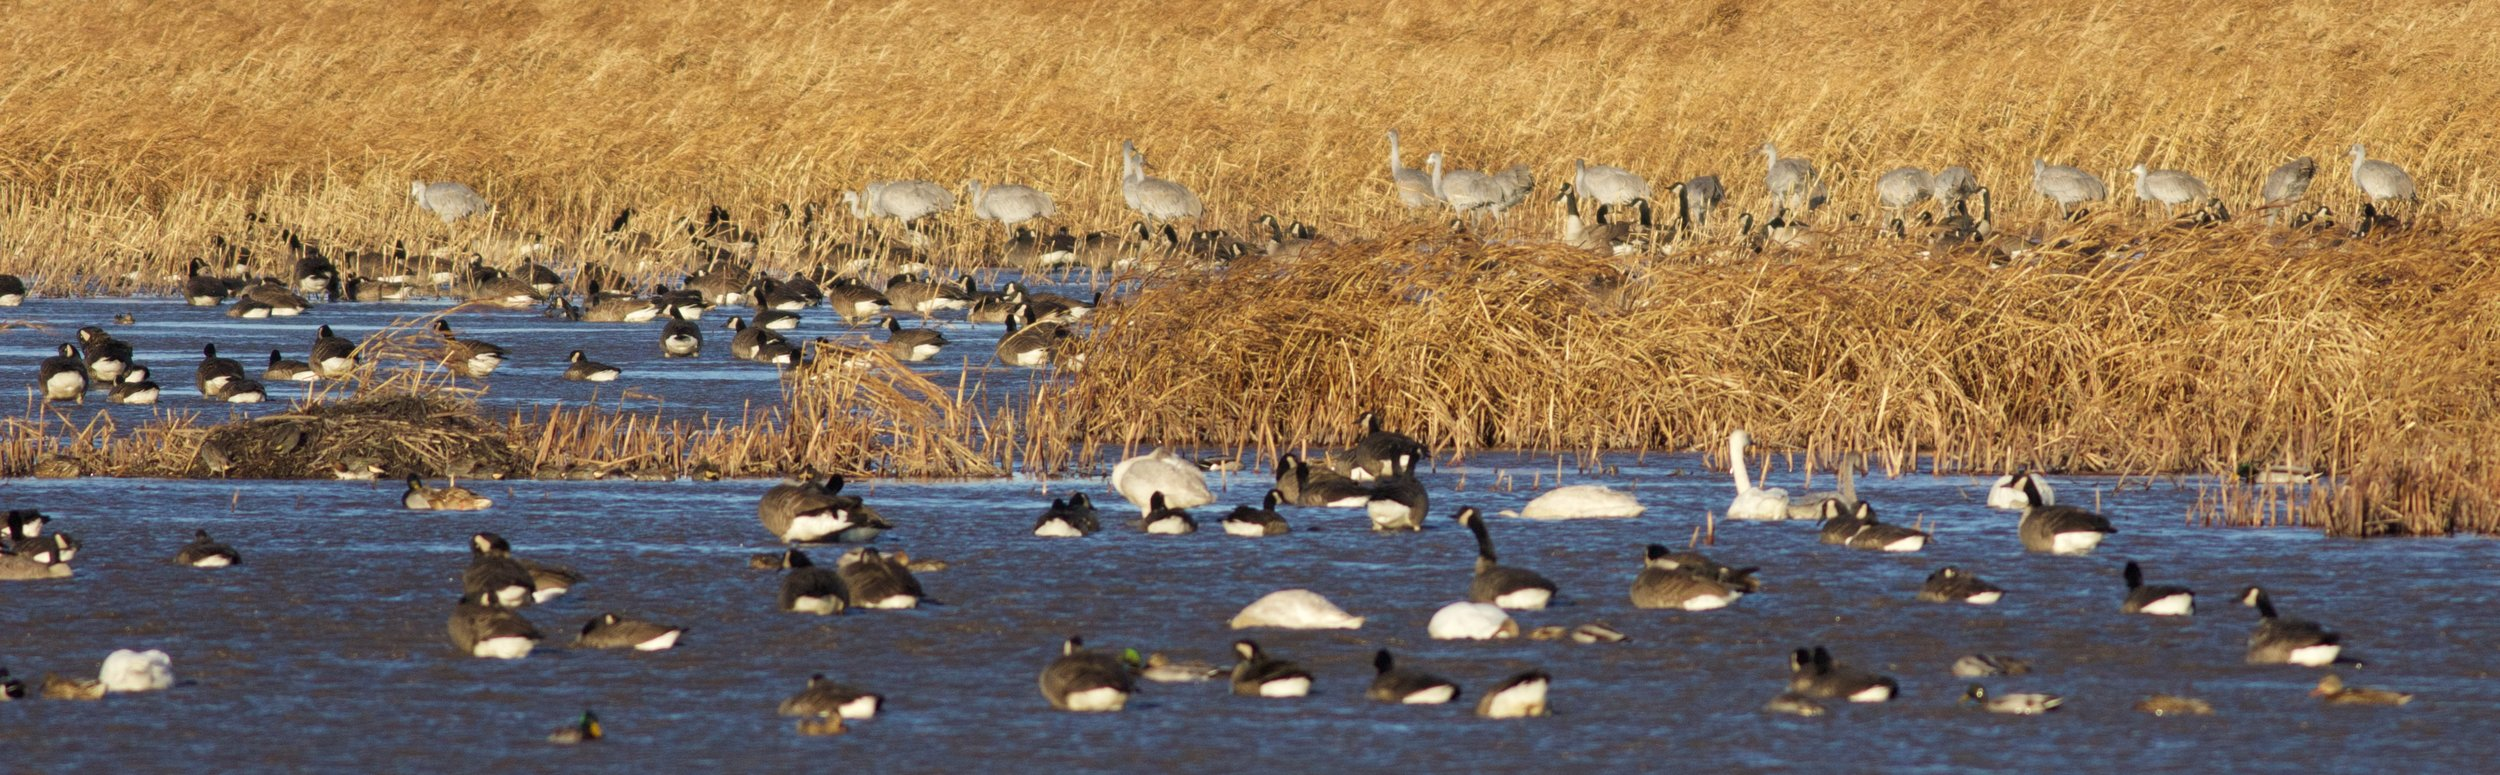 Goose Pond is bumper-to-bumper waterfowl. Photo by Arlene Koziol